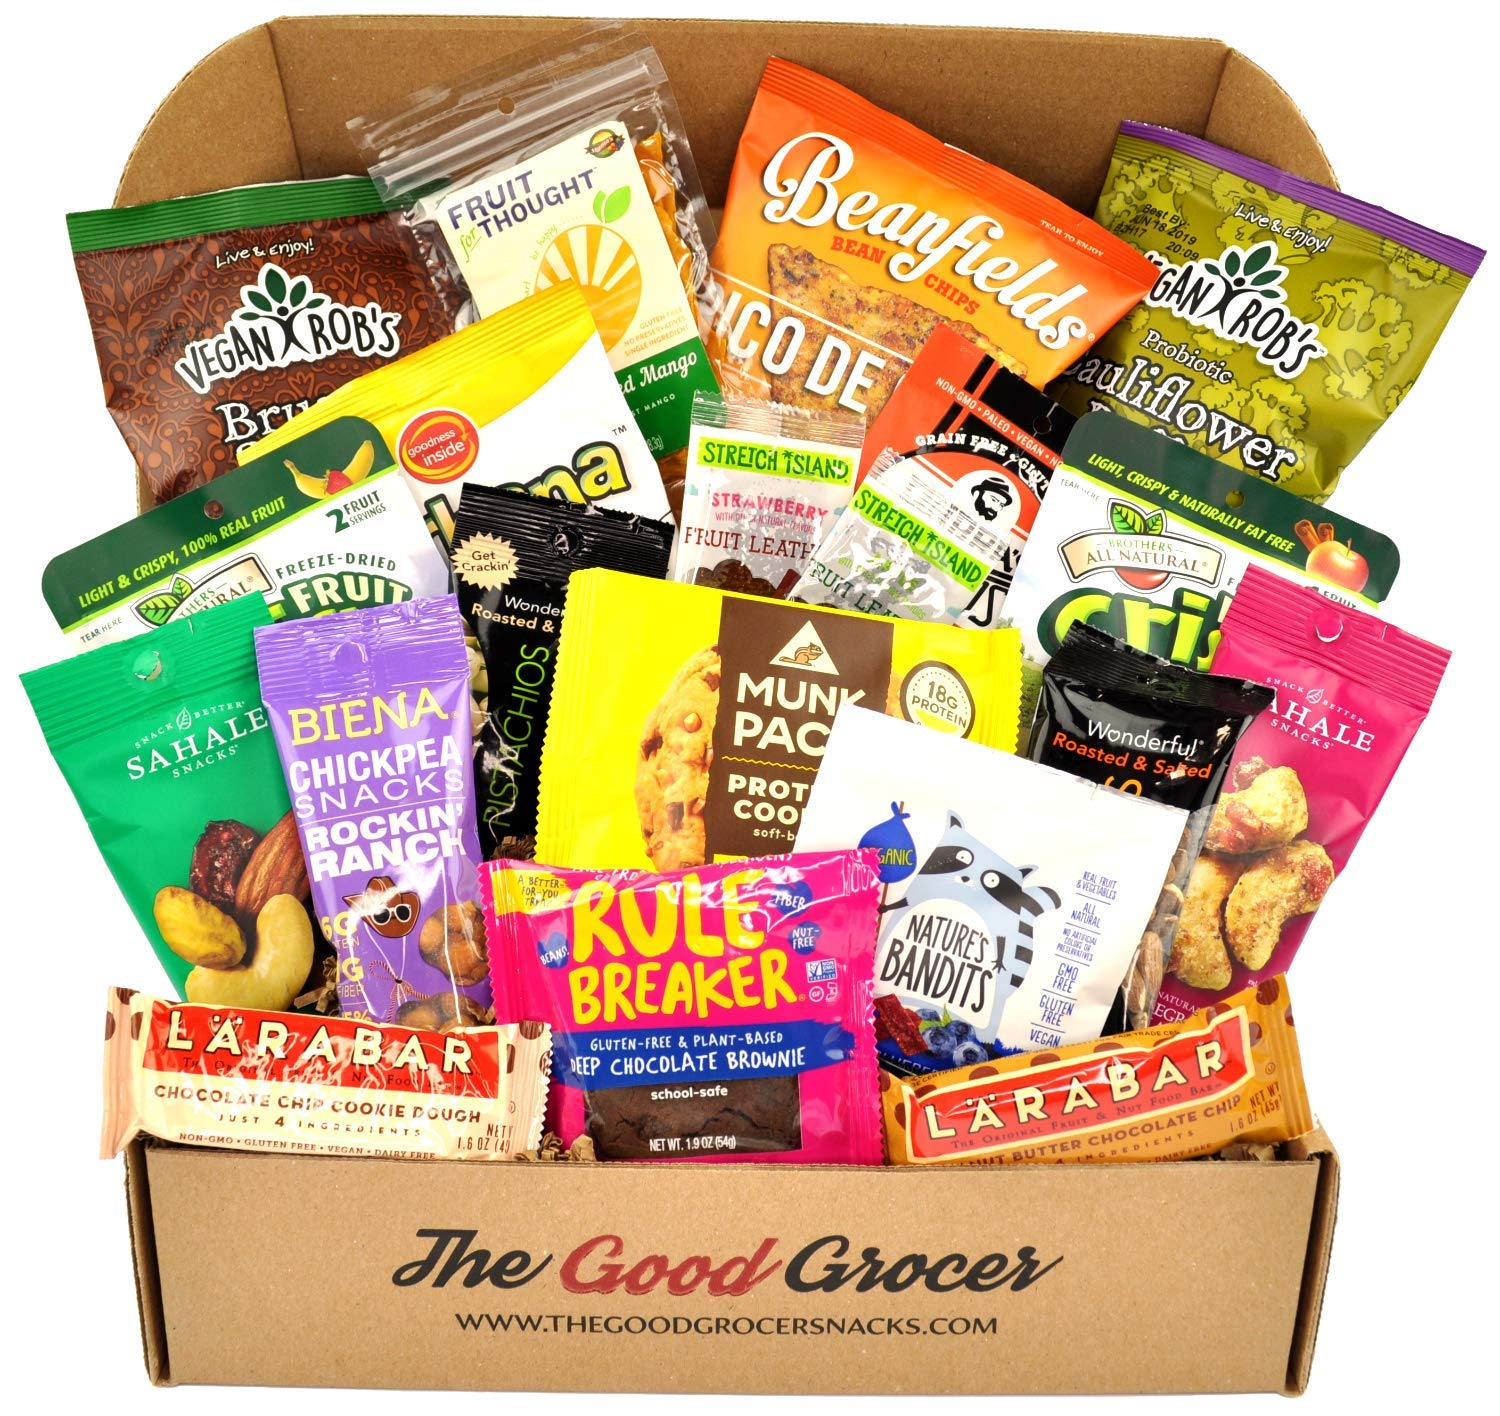 Premium GLUTEN FREE and VEGAN (DAIRY FREE) Healthy Snacks Care Package (20Ct): Featuring Delicious, Wholesome, Nutrient Dense Gluten Free and Vegan snacks. Office College Client Gift Box Basket by The Good Grocer